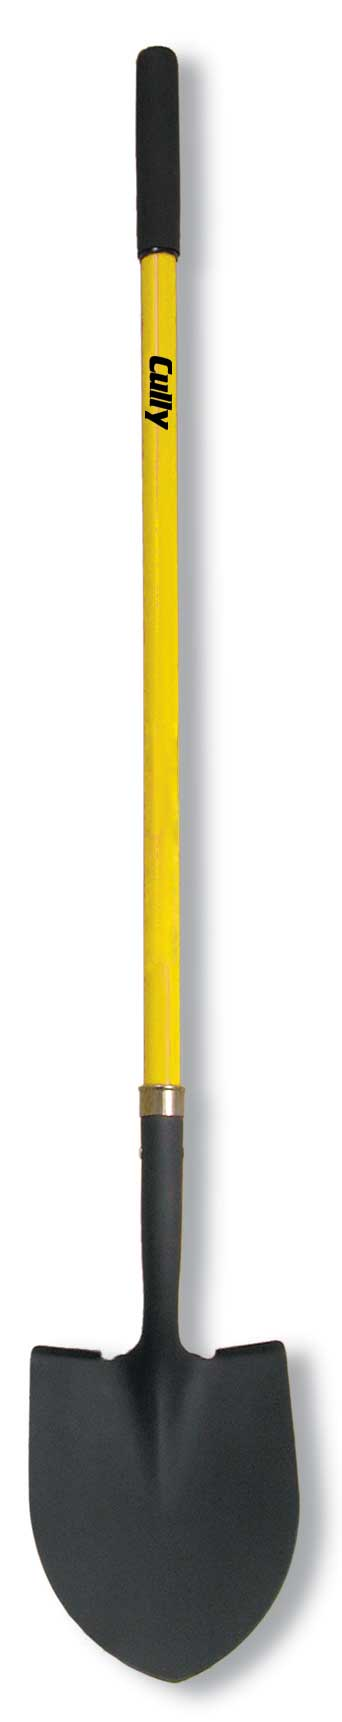 CULLY 37250 #2 ROUND POINT SHOVELYELLOW H